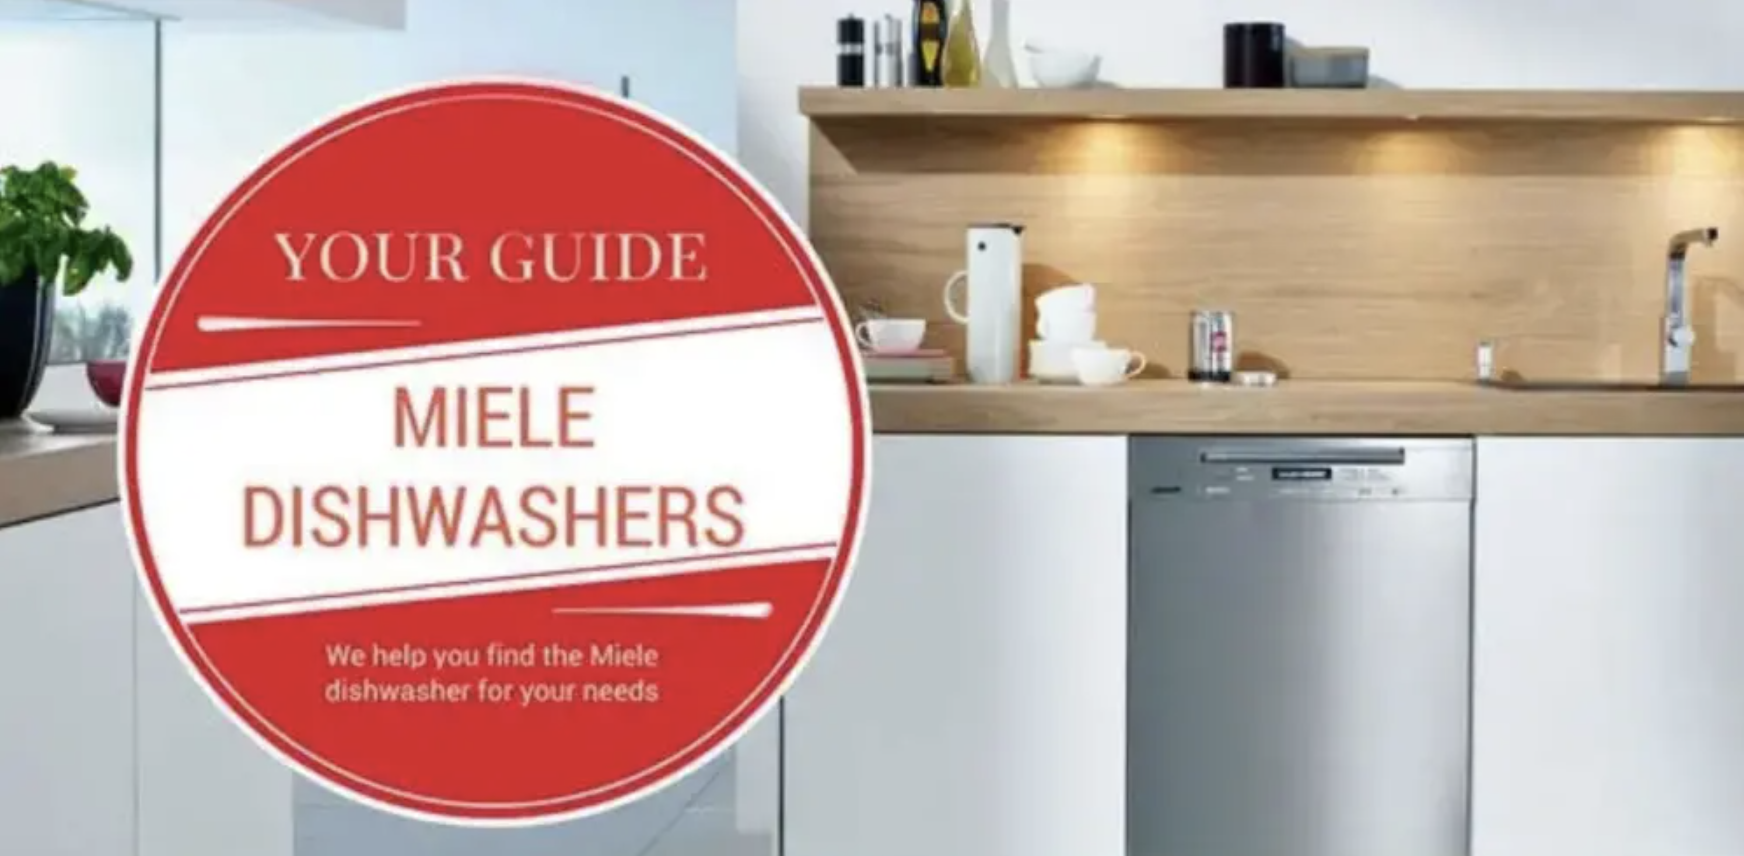 Your Guide To Miele Dishwashers Best Dishwasher Miele Dishwasher Miele